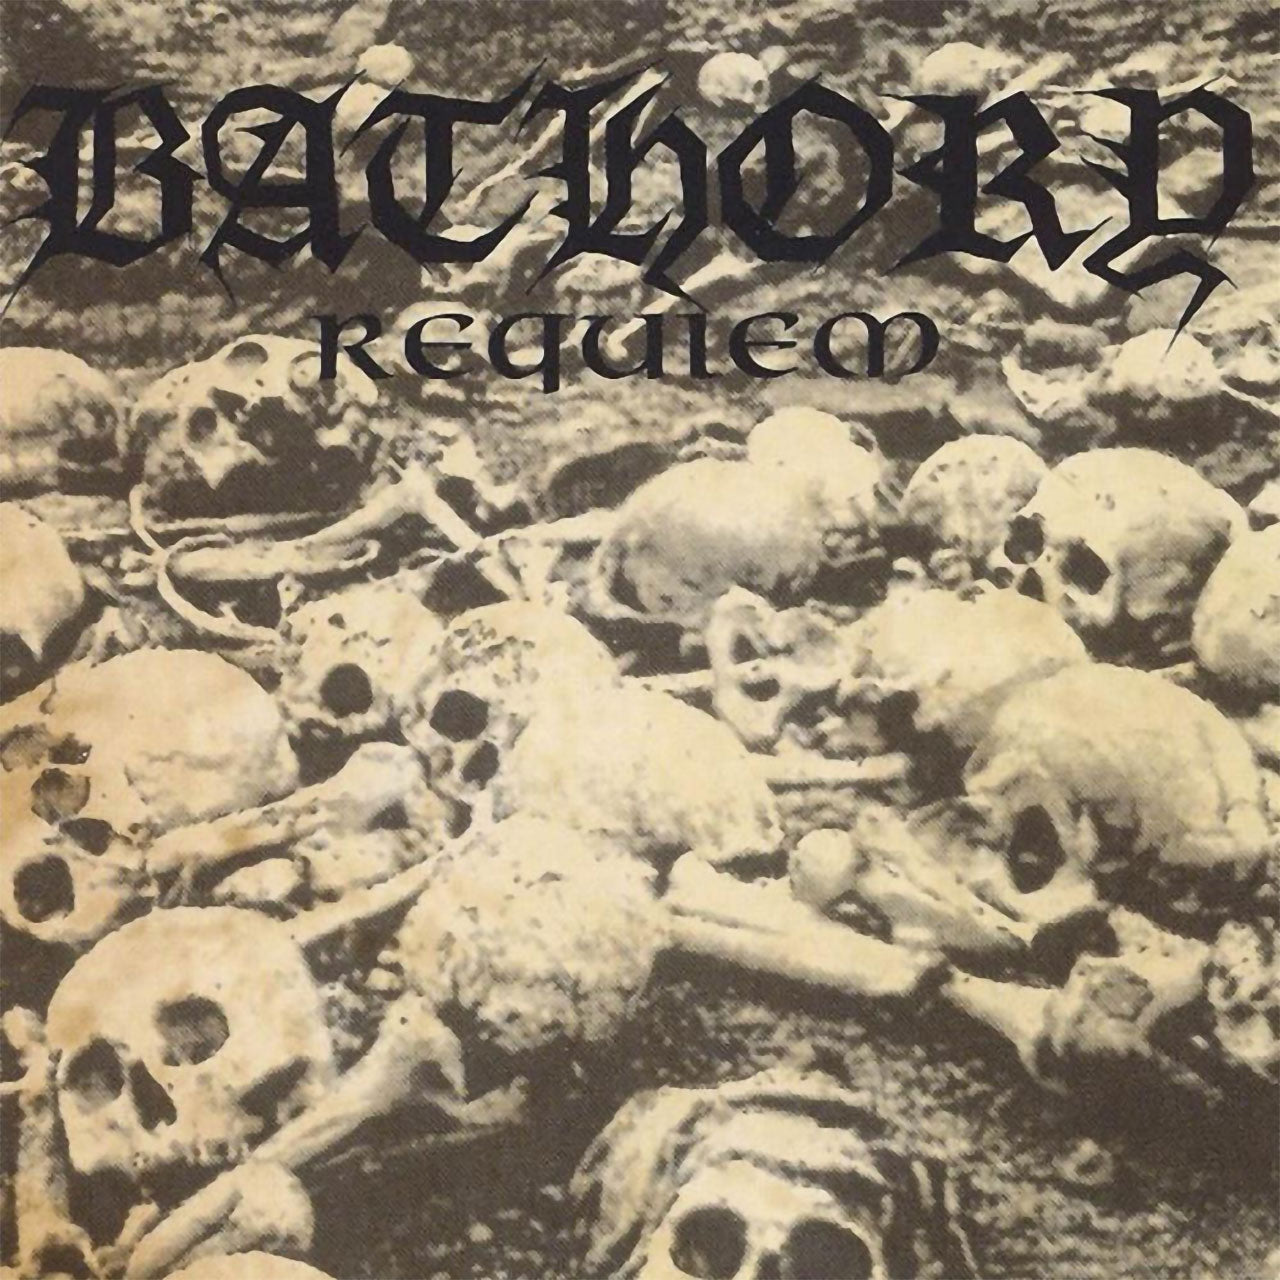 Bathory - Requiem (CD)